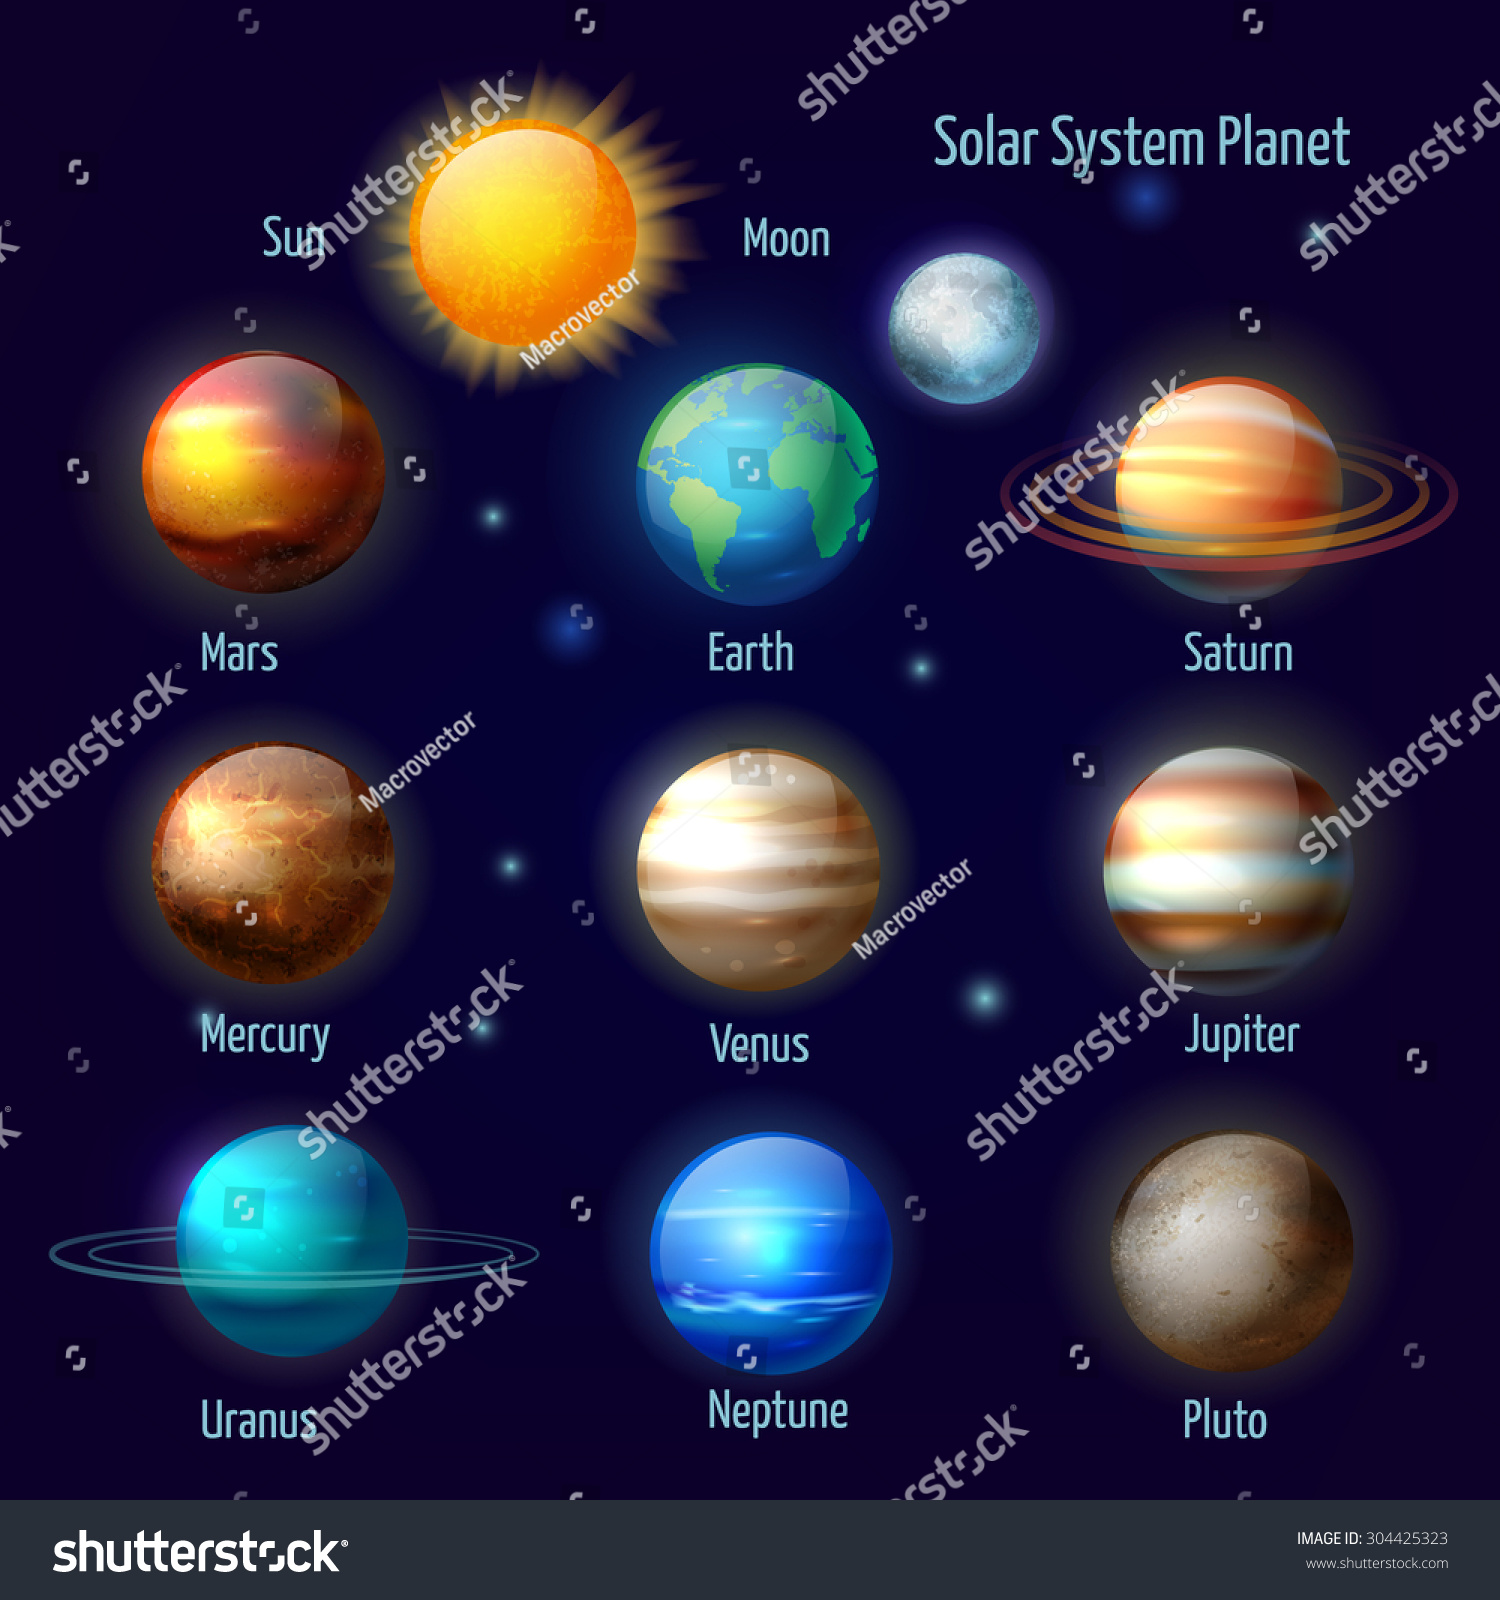 Royalty-free Solar system 8 planets and pluto with ...